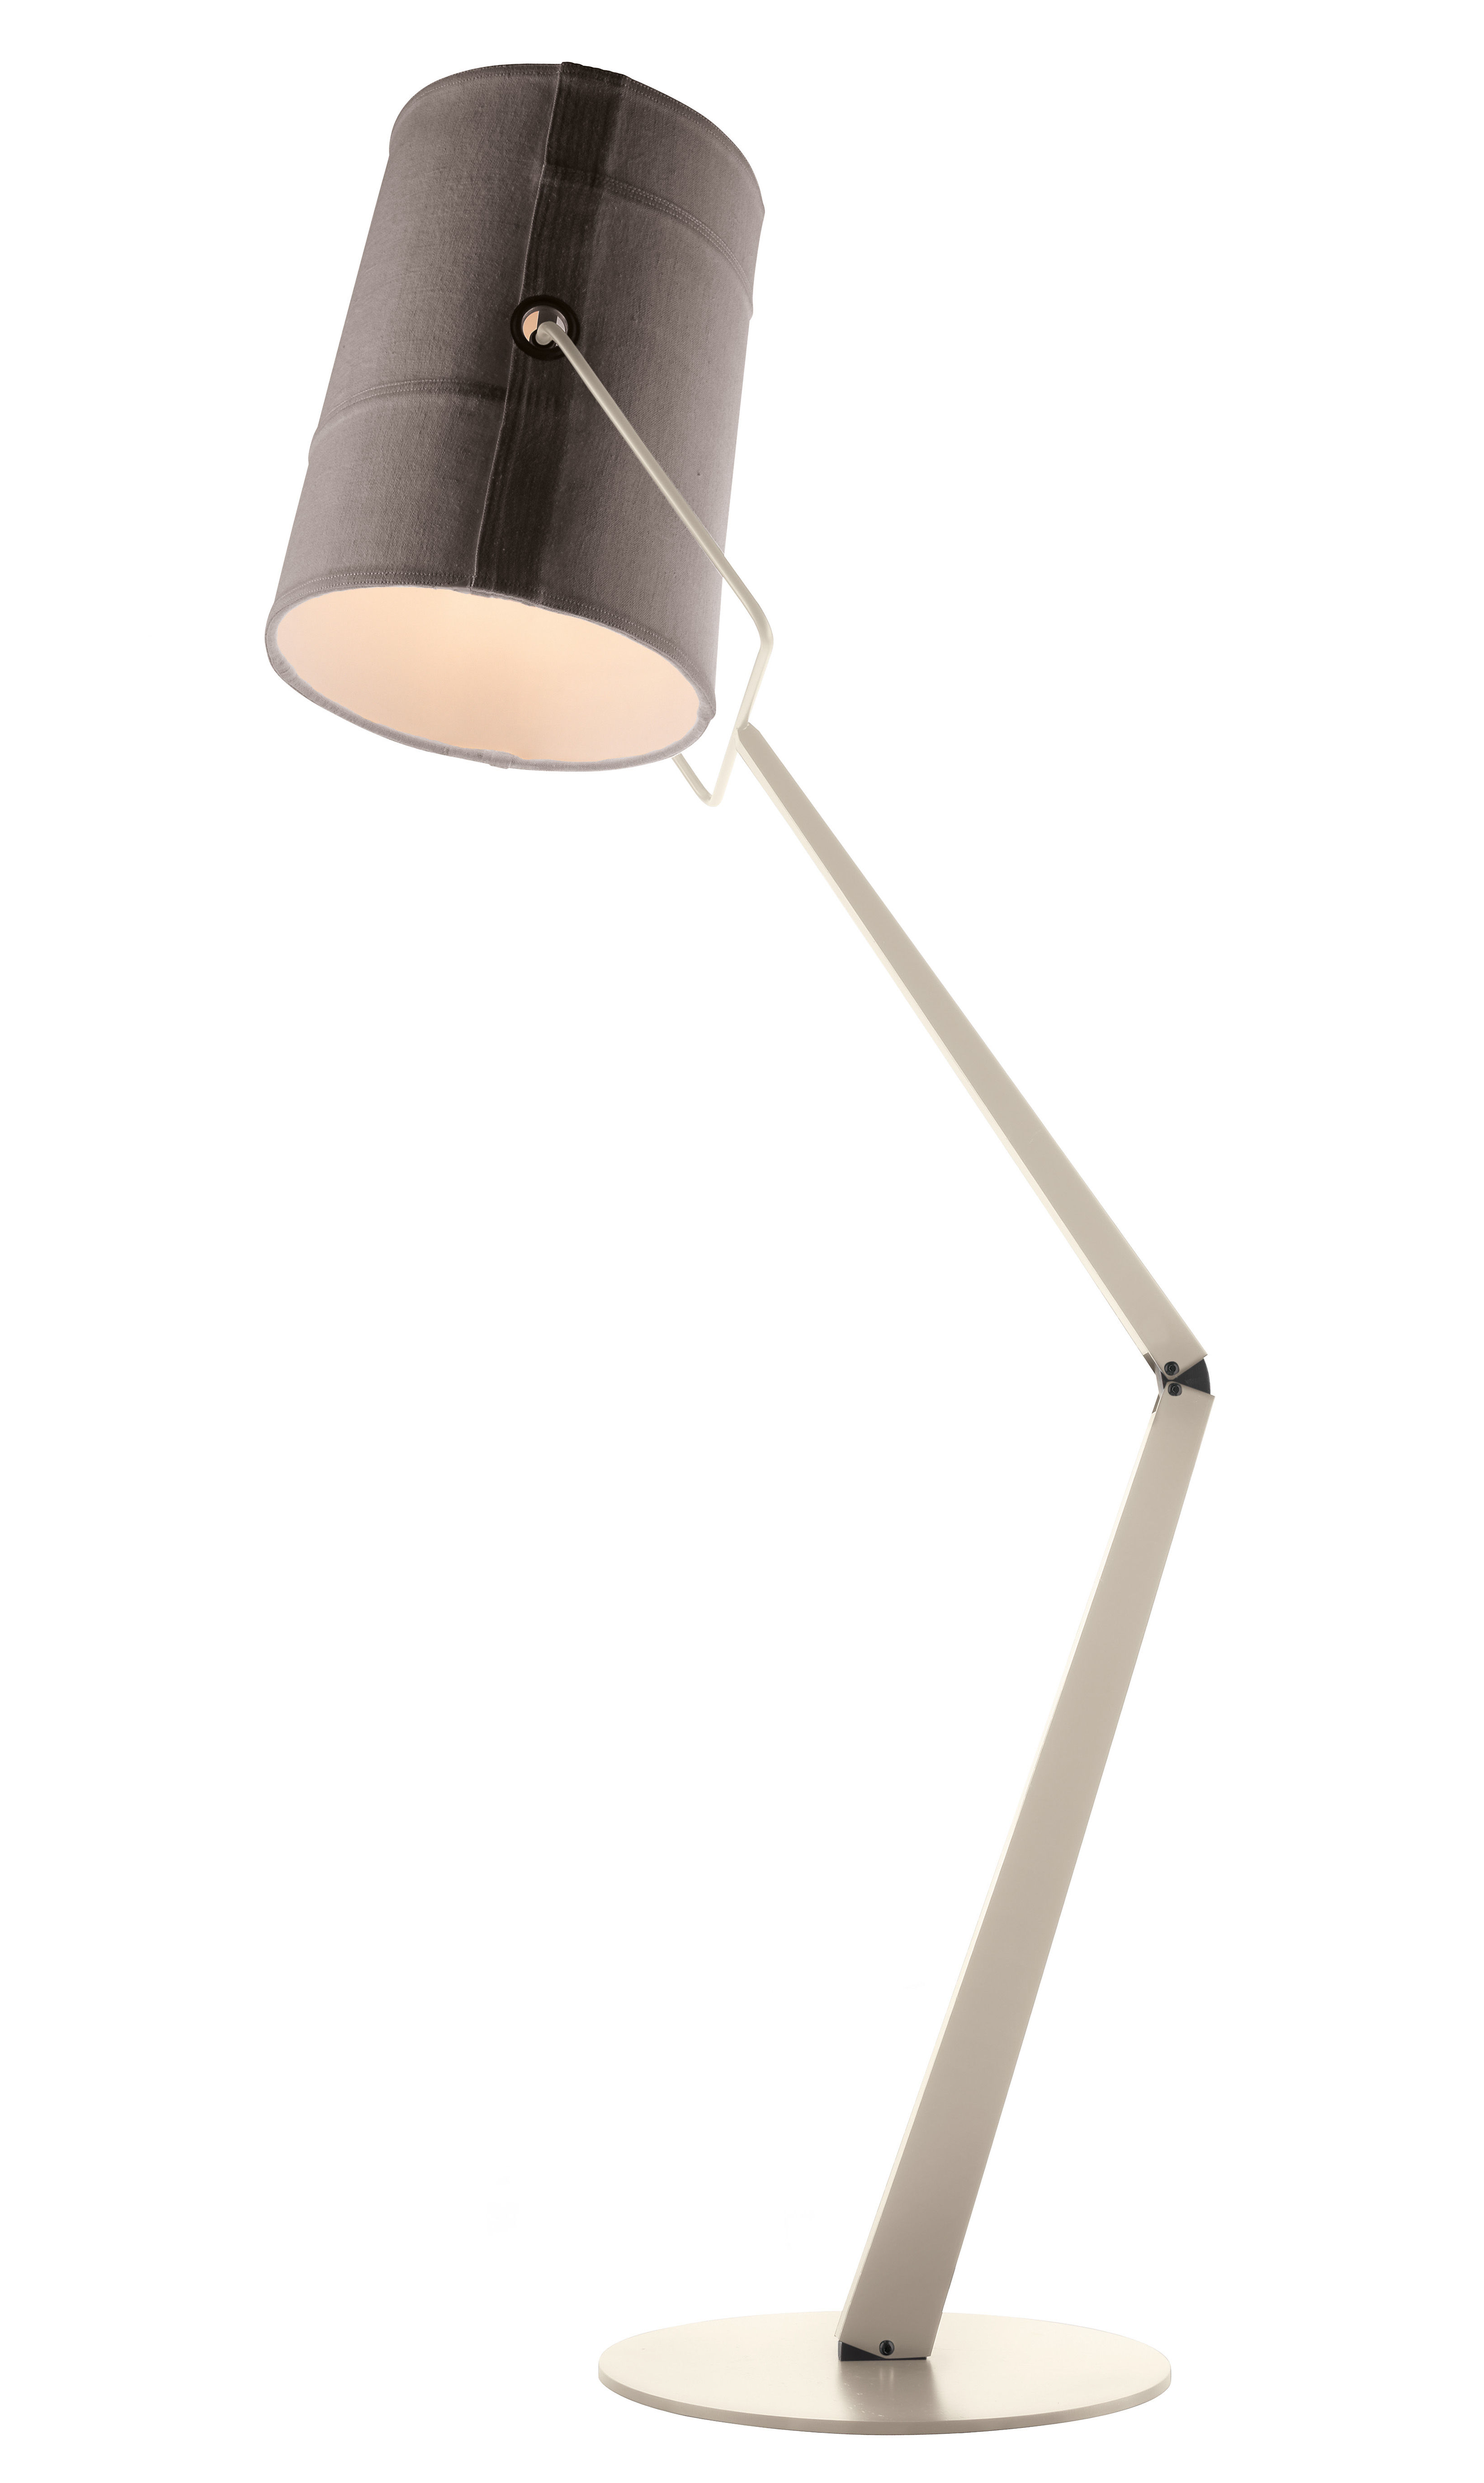 Lighting - Floor lamps - Fork Floor lamp by Diesel with Foscarini - Grey / Ivory base - Fabric, Varnished metal